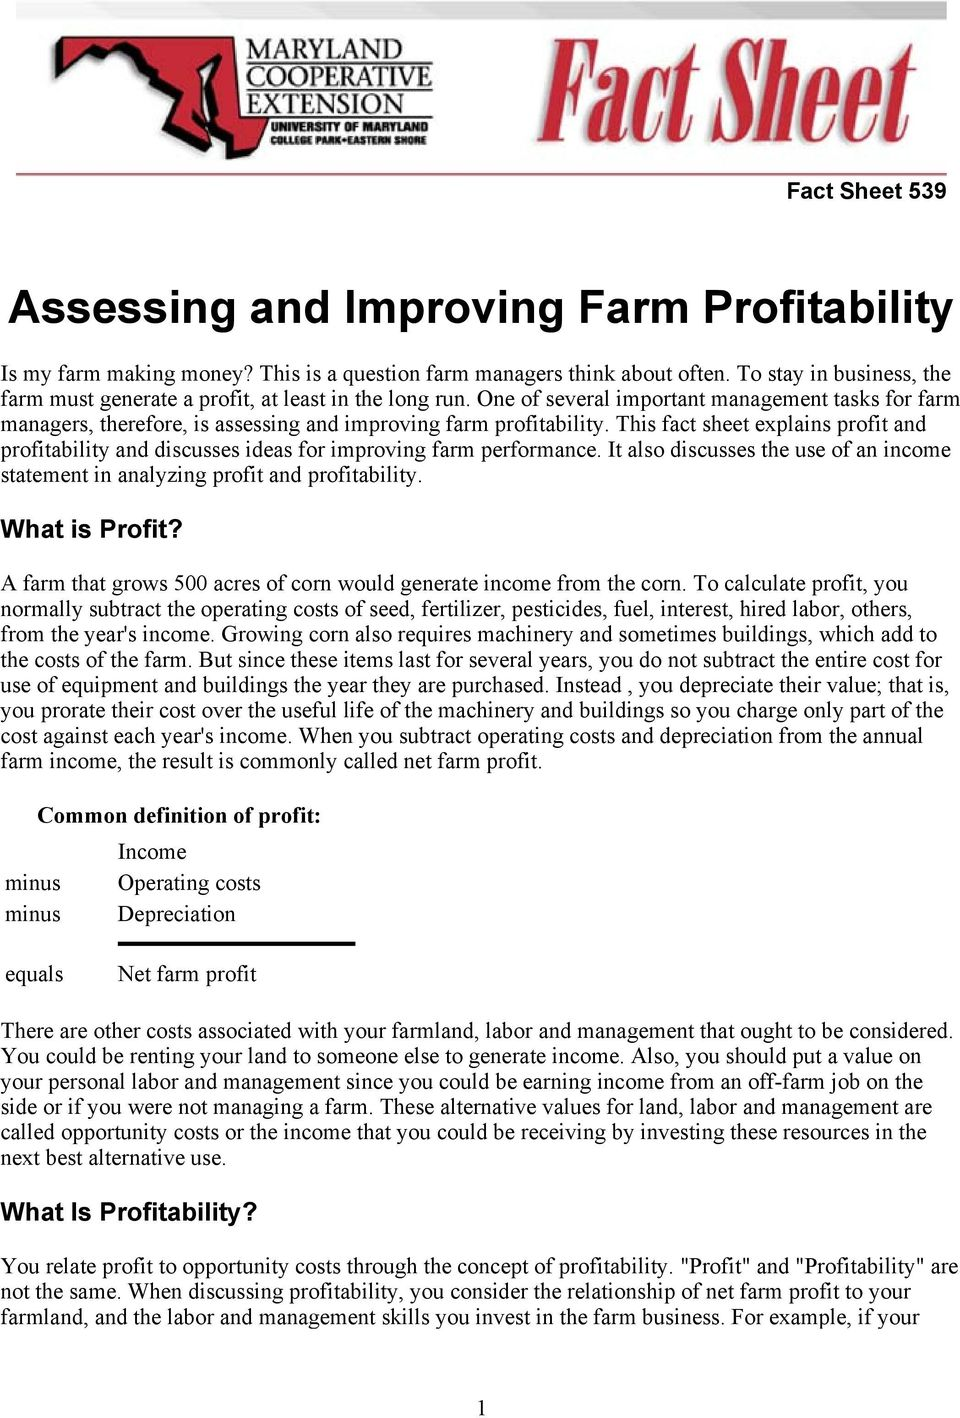 This fact sheet explains profit and profitability and discusses ideas for improving farm performance. It also discusses the use of an income statement in analyzing profit and profitability.